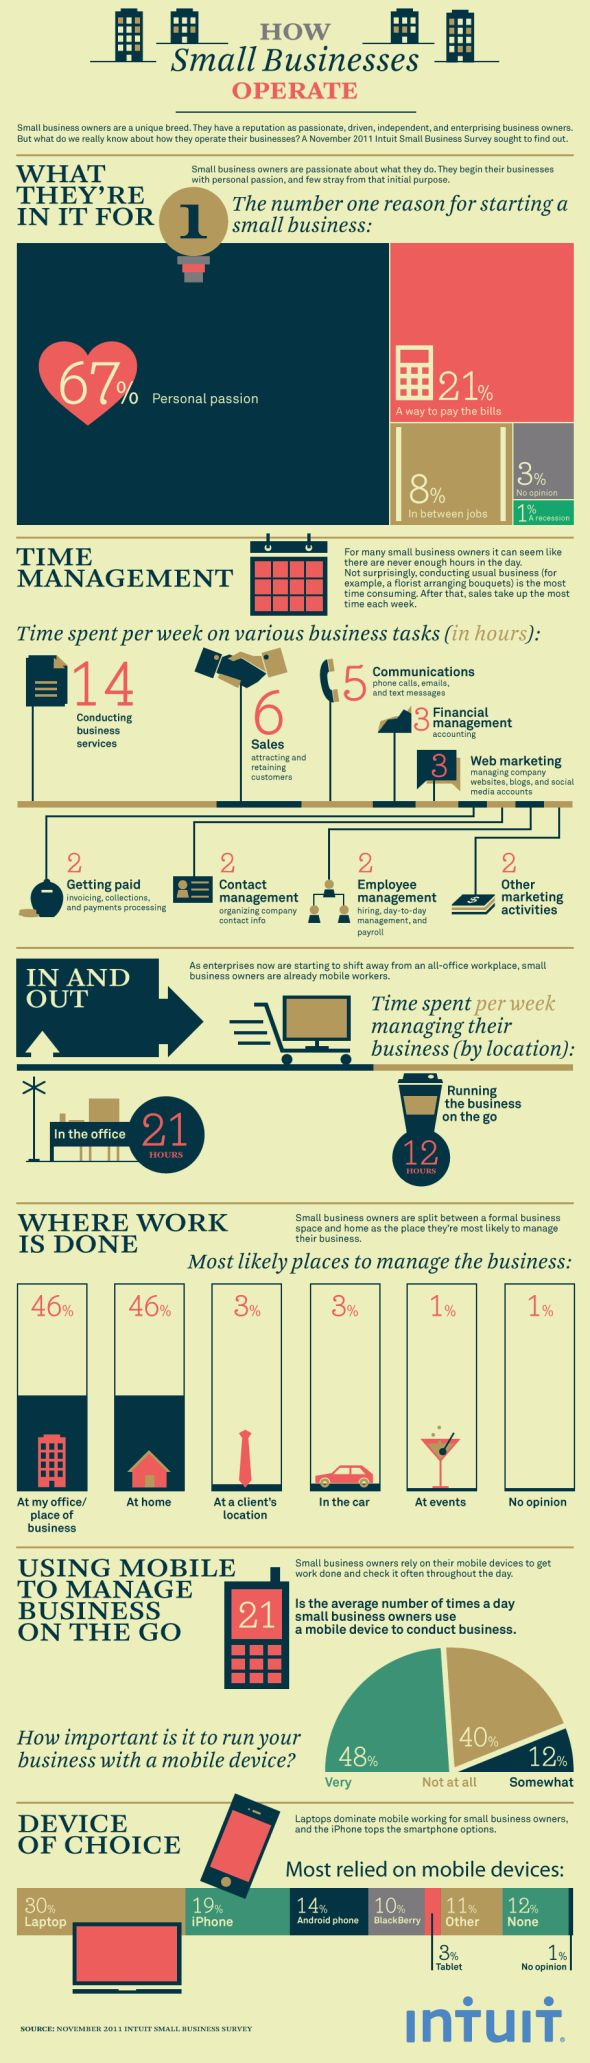 Technology Means Small Business Owners Spend Less Time Running Things